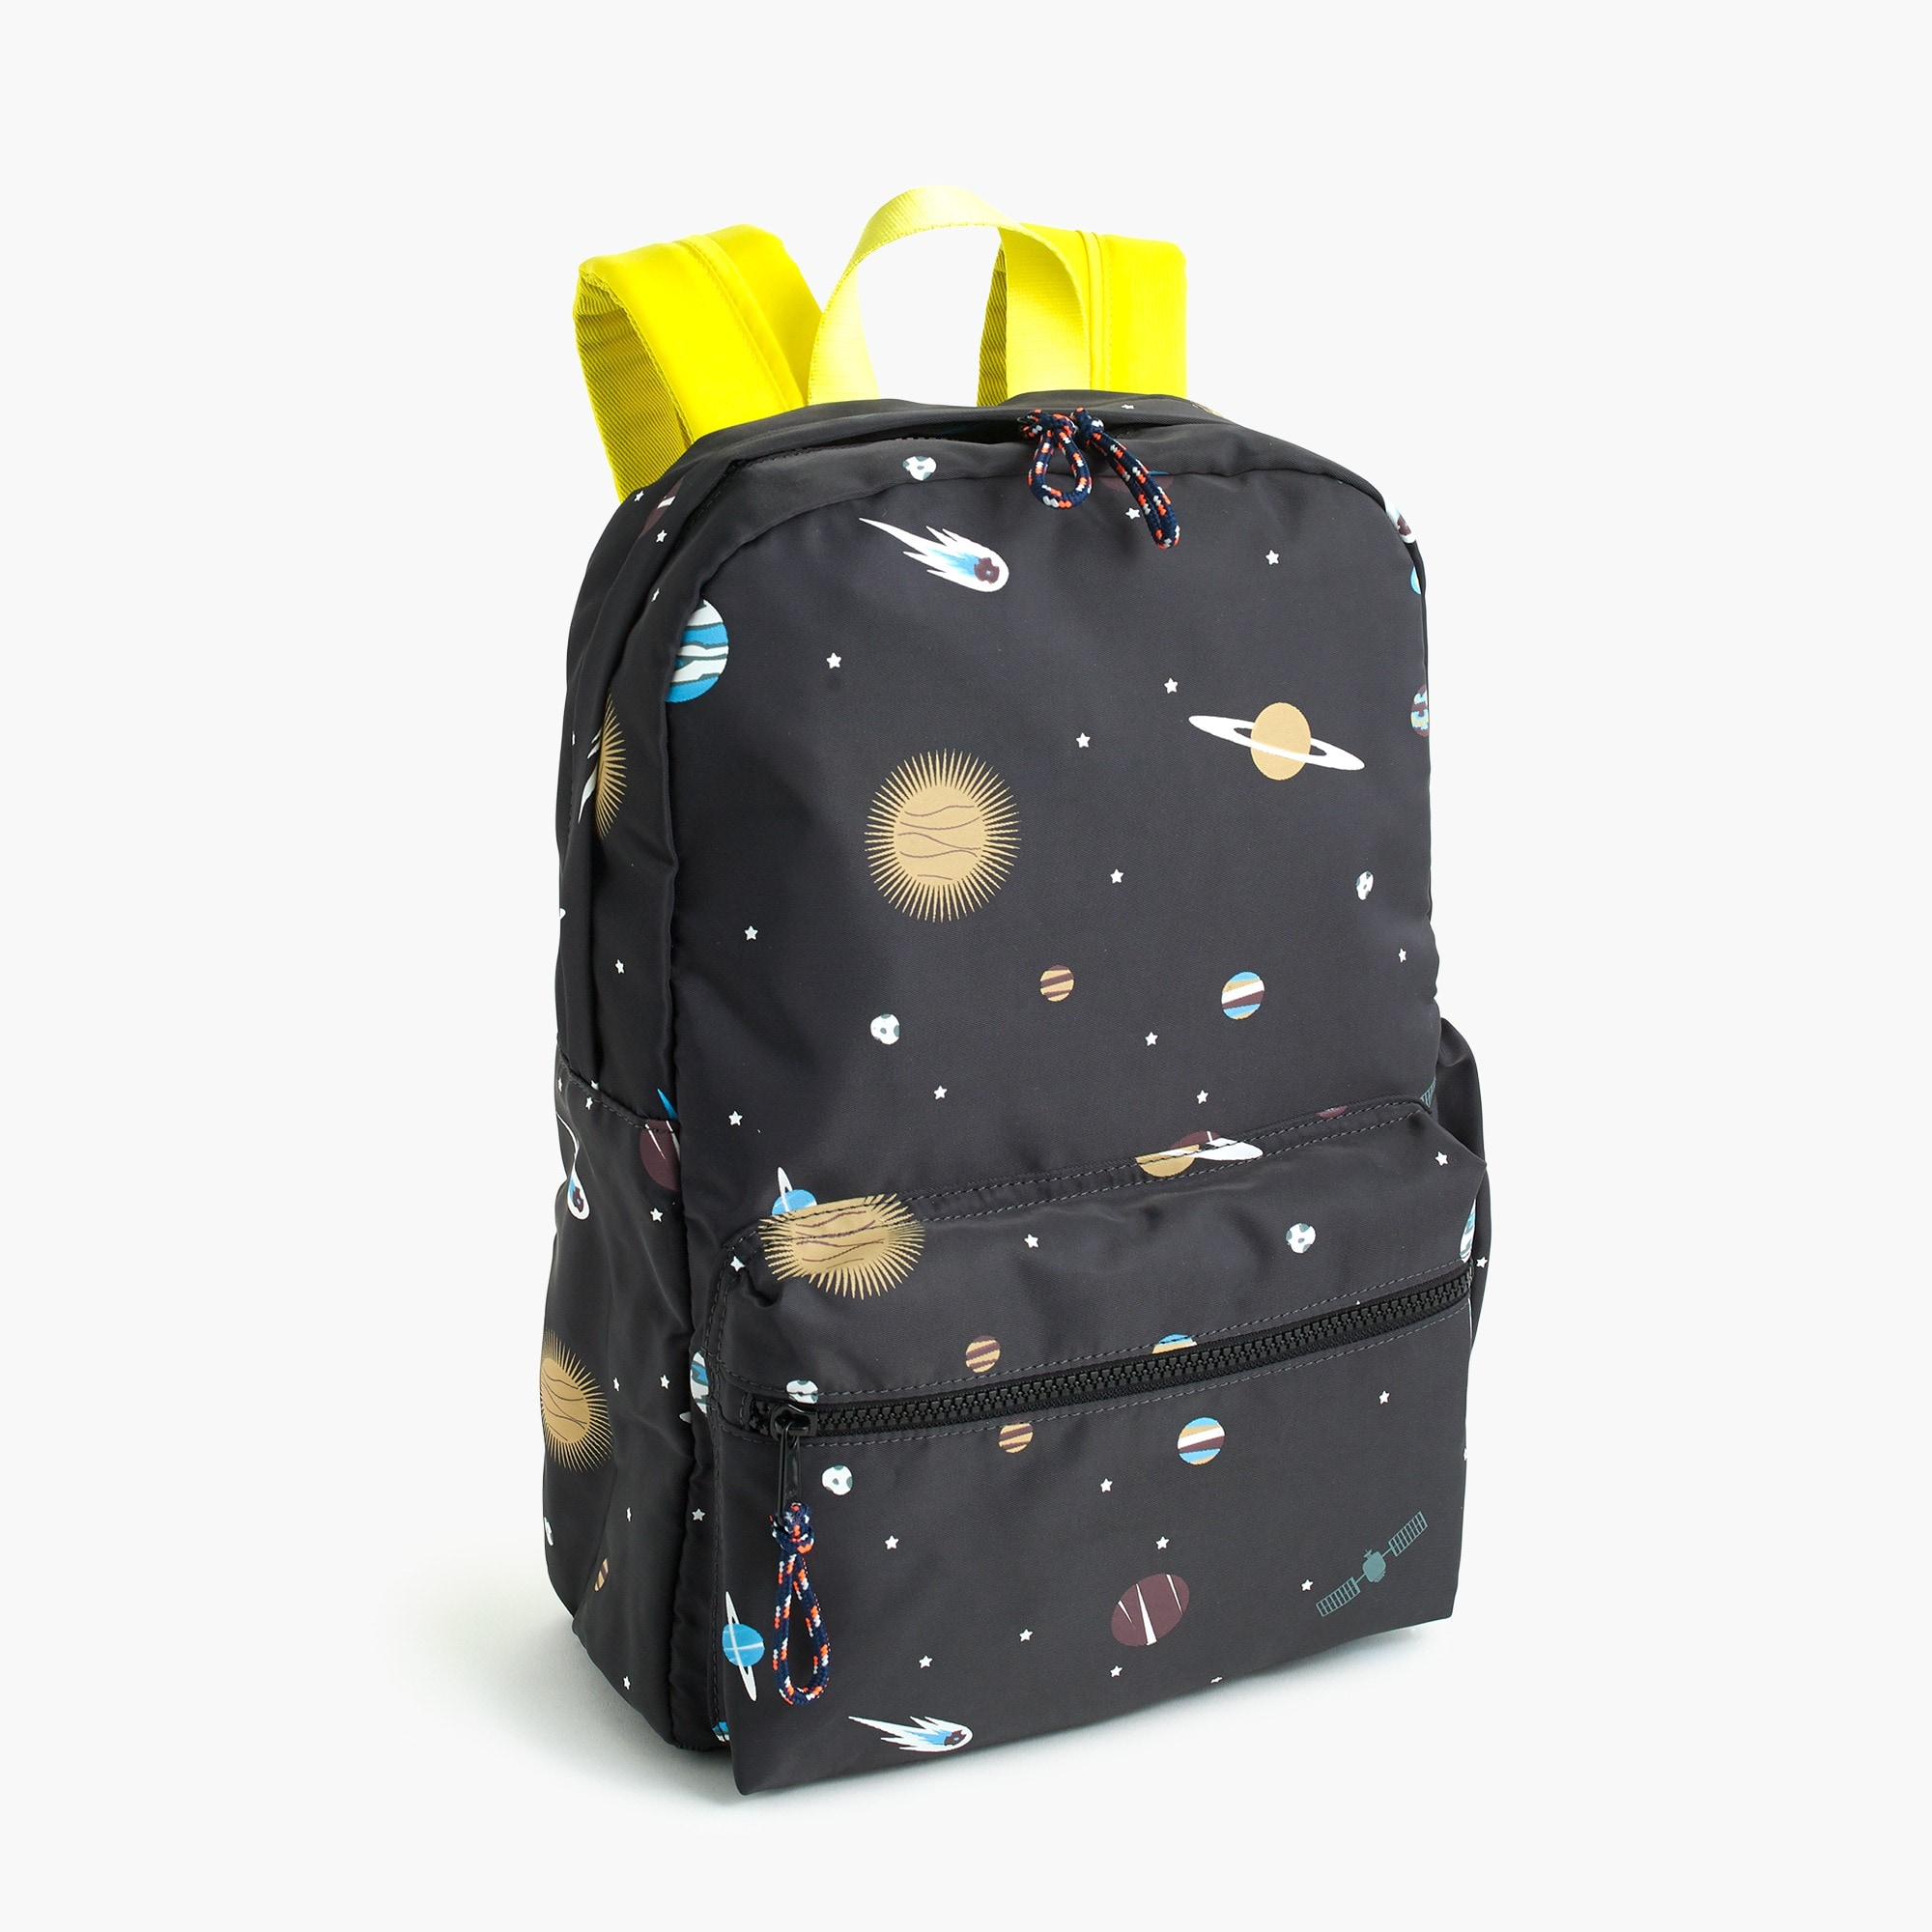 Kids' glow-in-the-dark space-print backpack boy new arrivals c